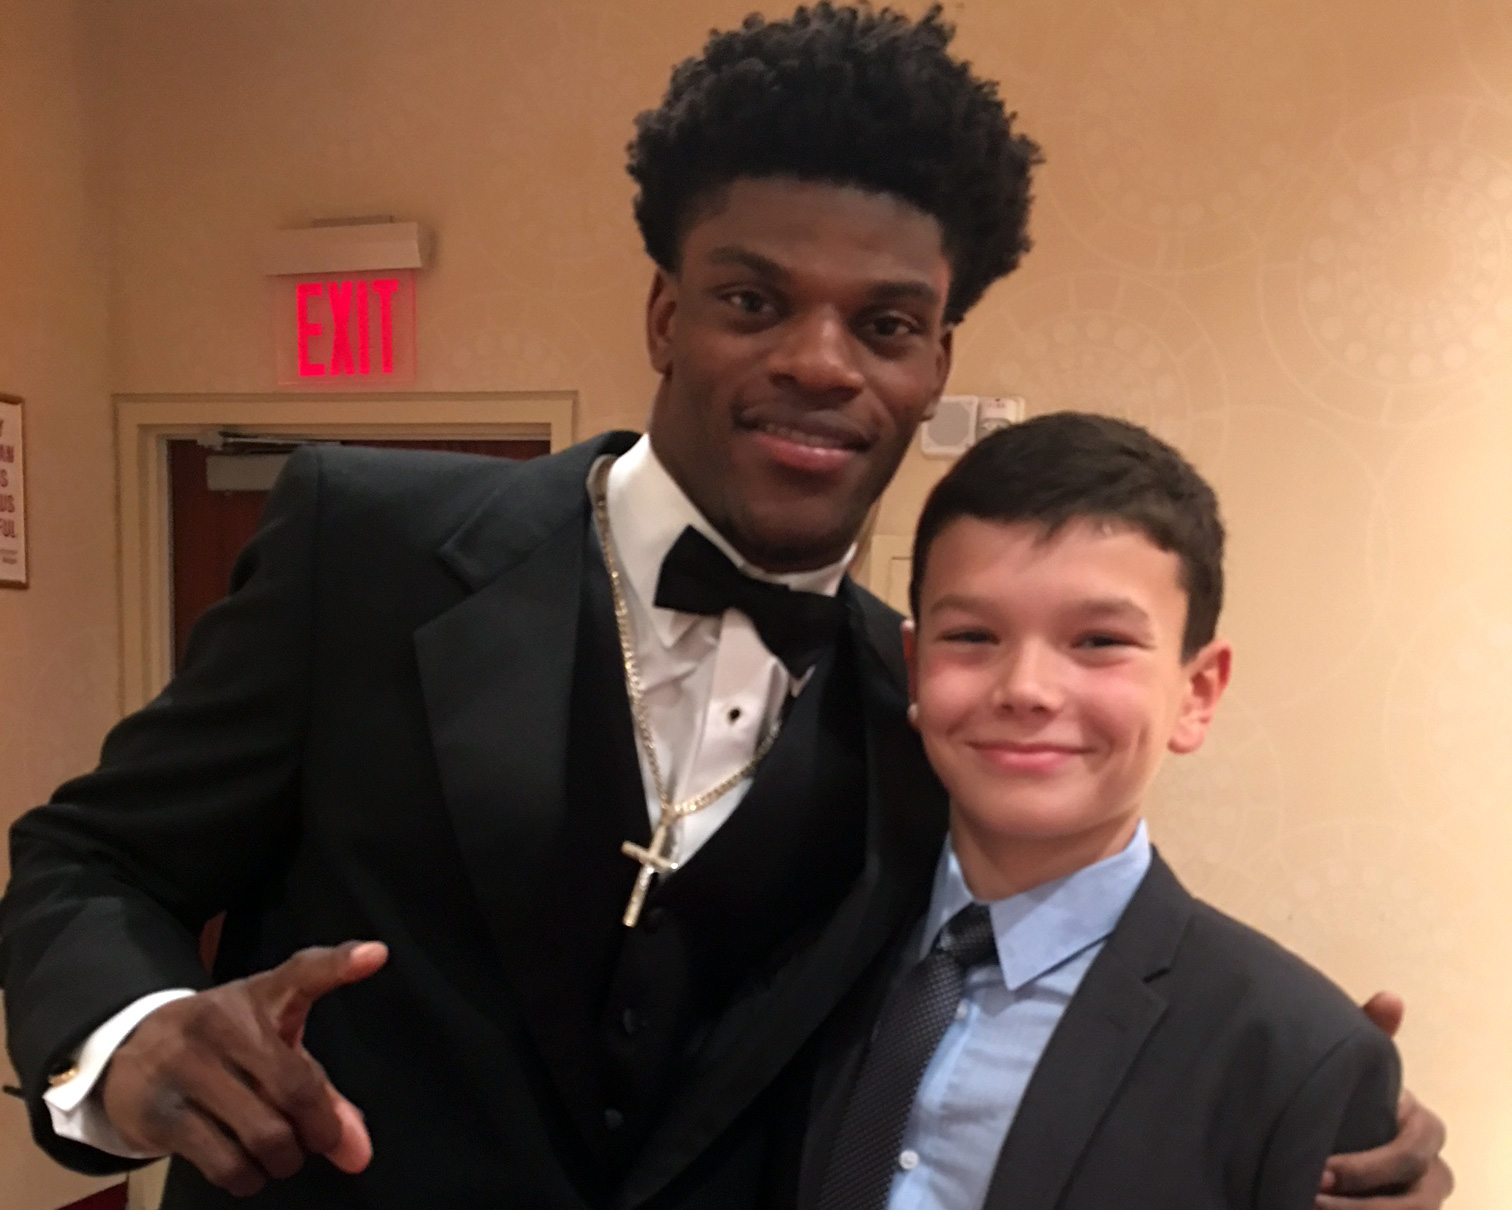 The author's son Julian with 2016 winner Lamar Jackson.